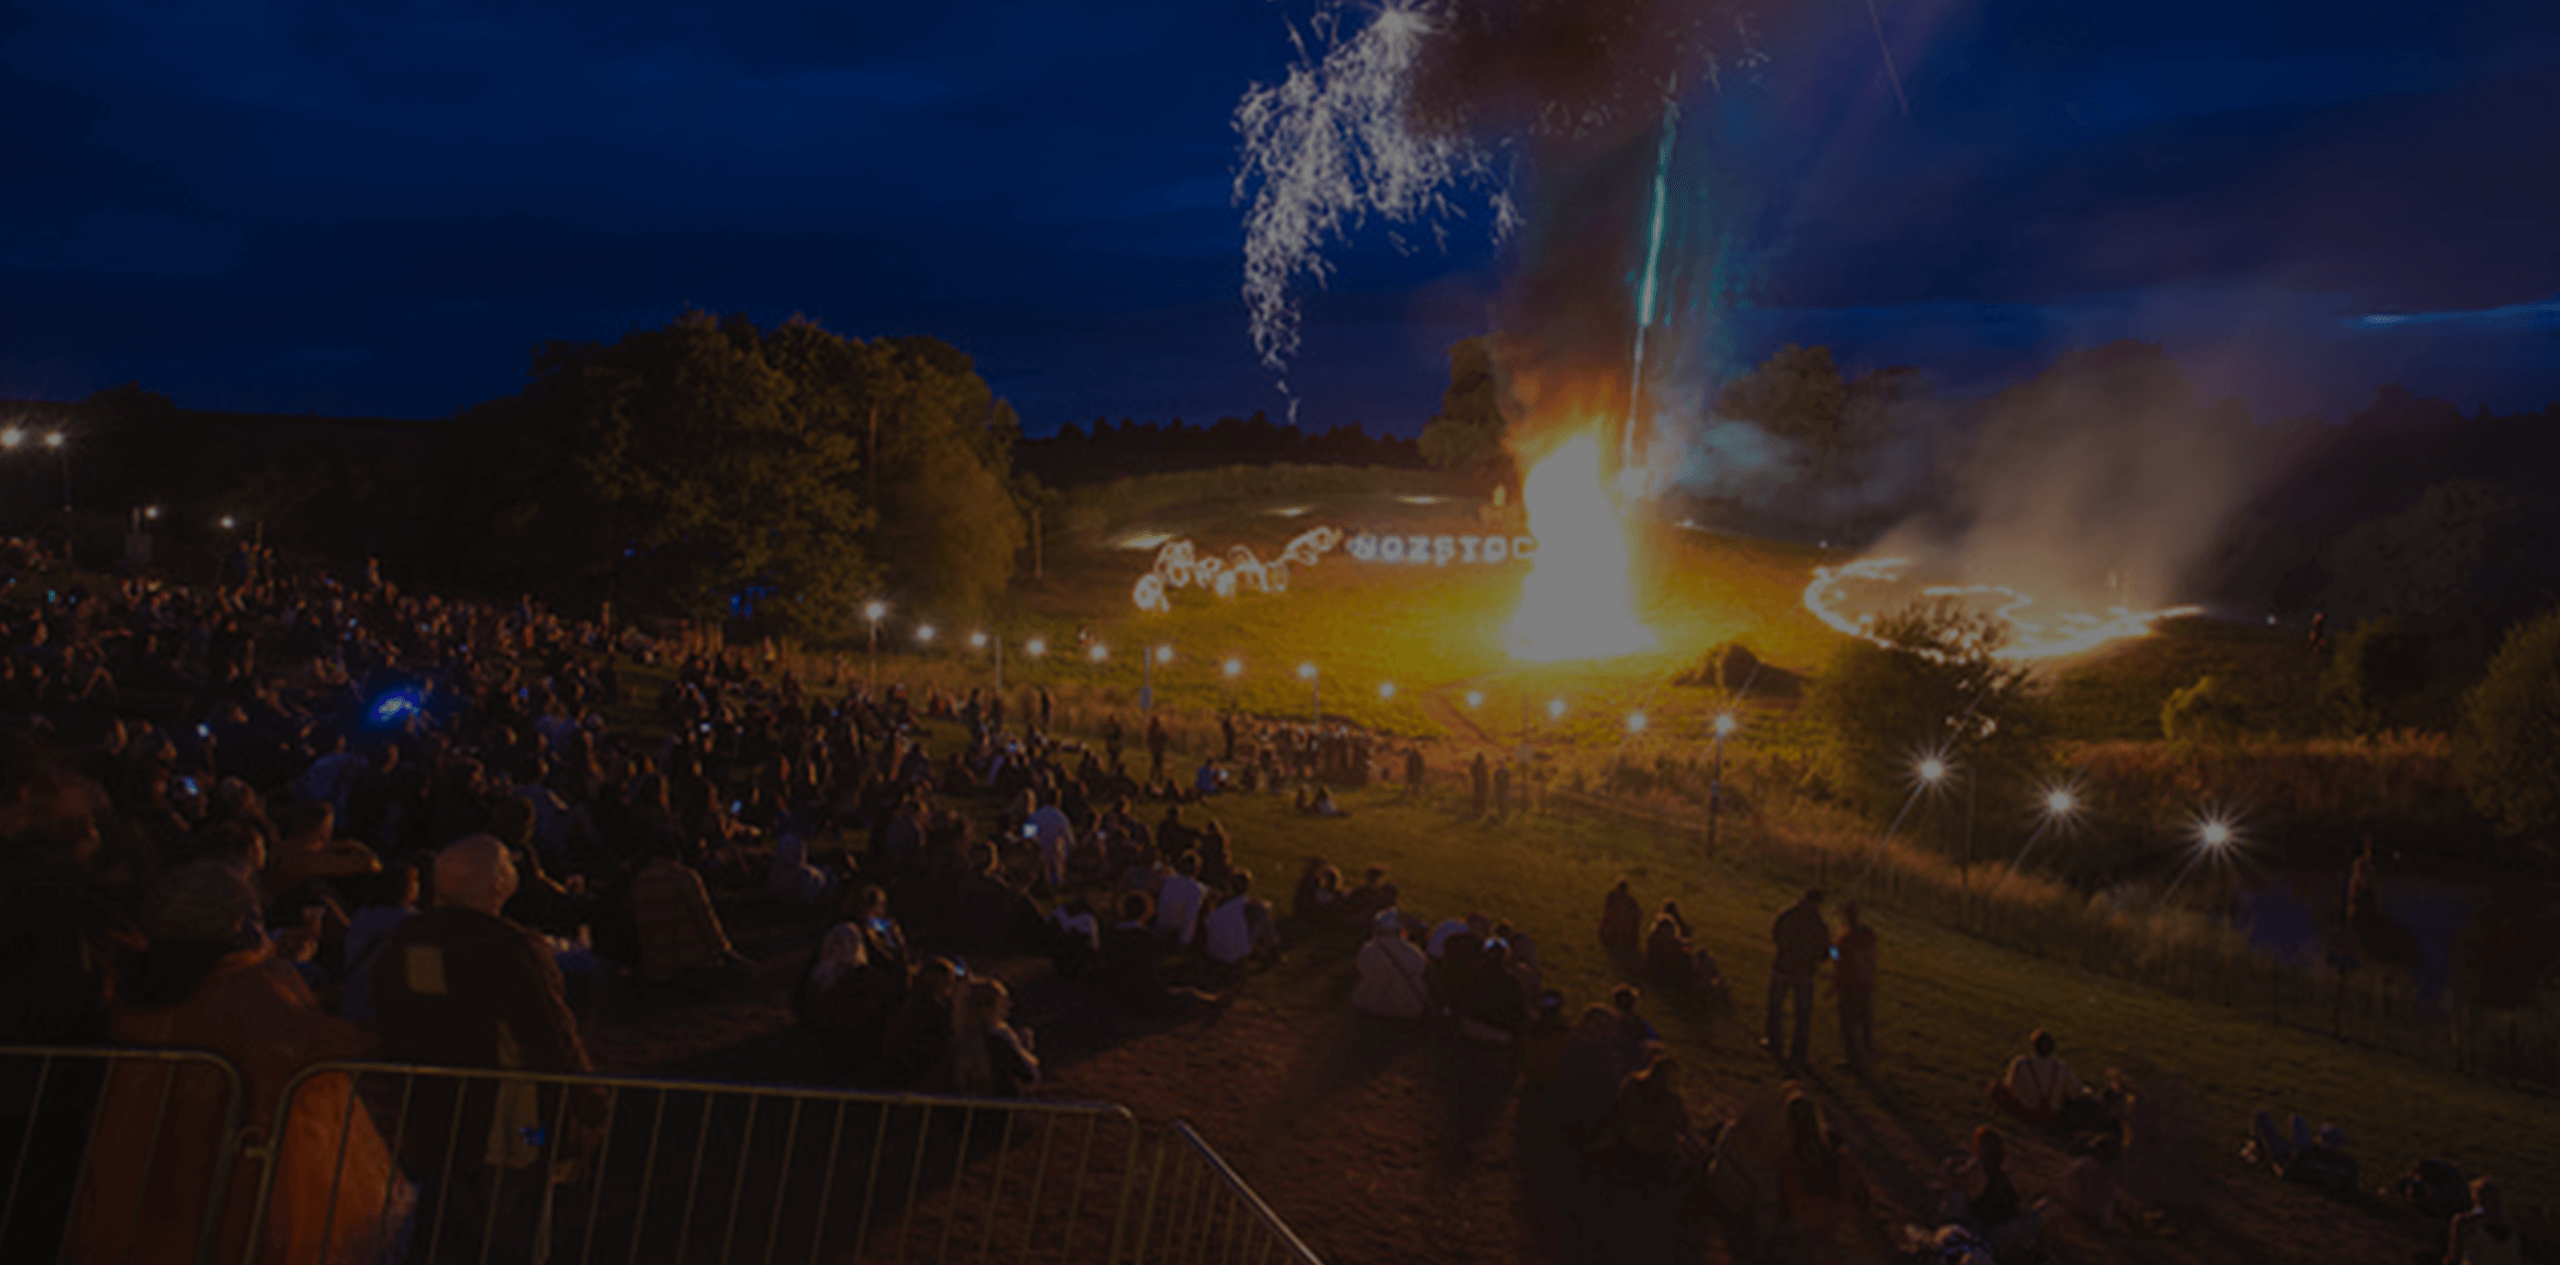 Nozstock named Best Festival in The Shire